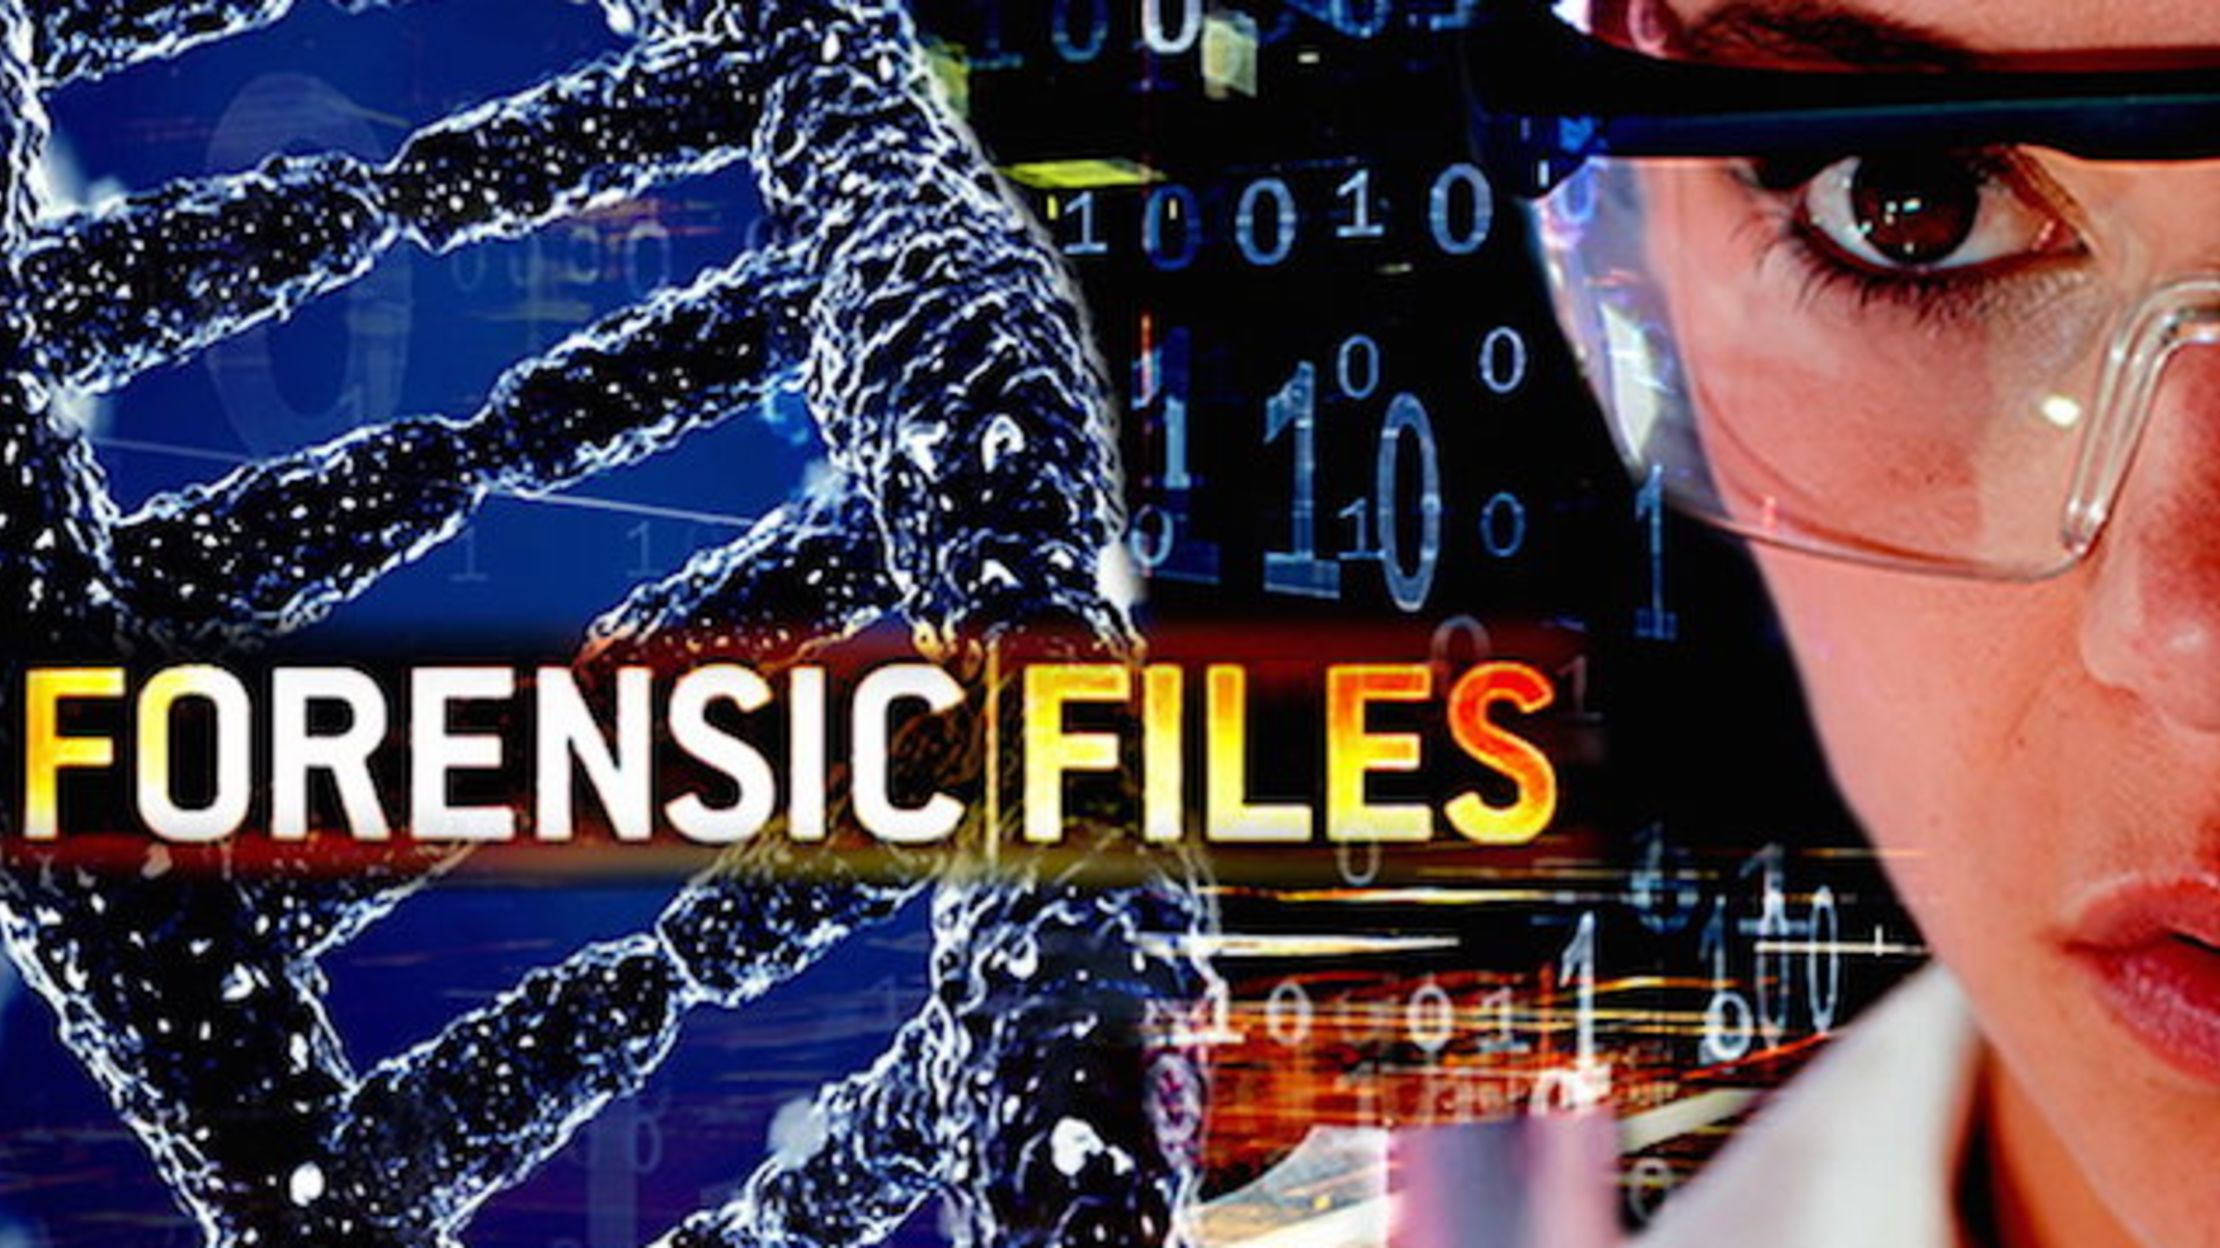 15 Fascinating Facts About Forensic Files Mental Floss